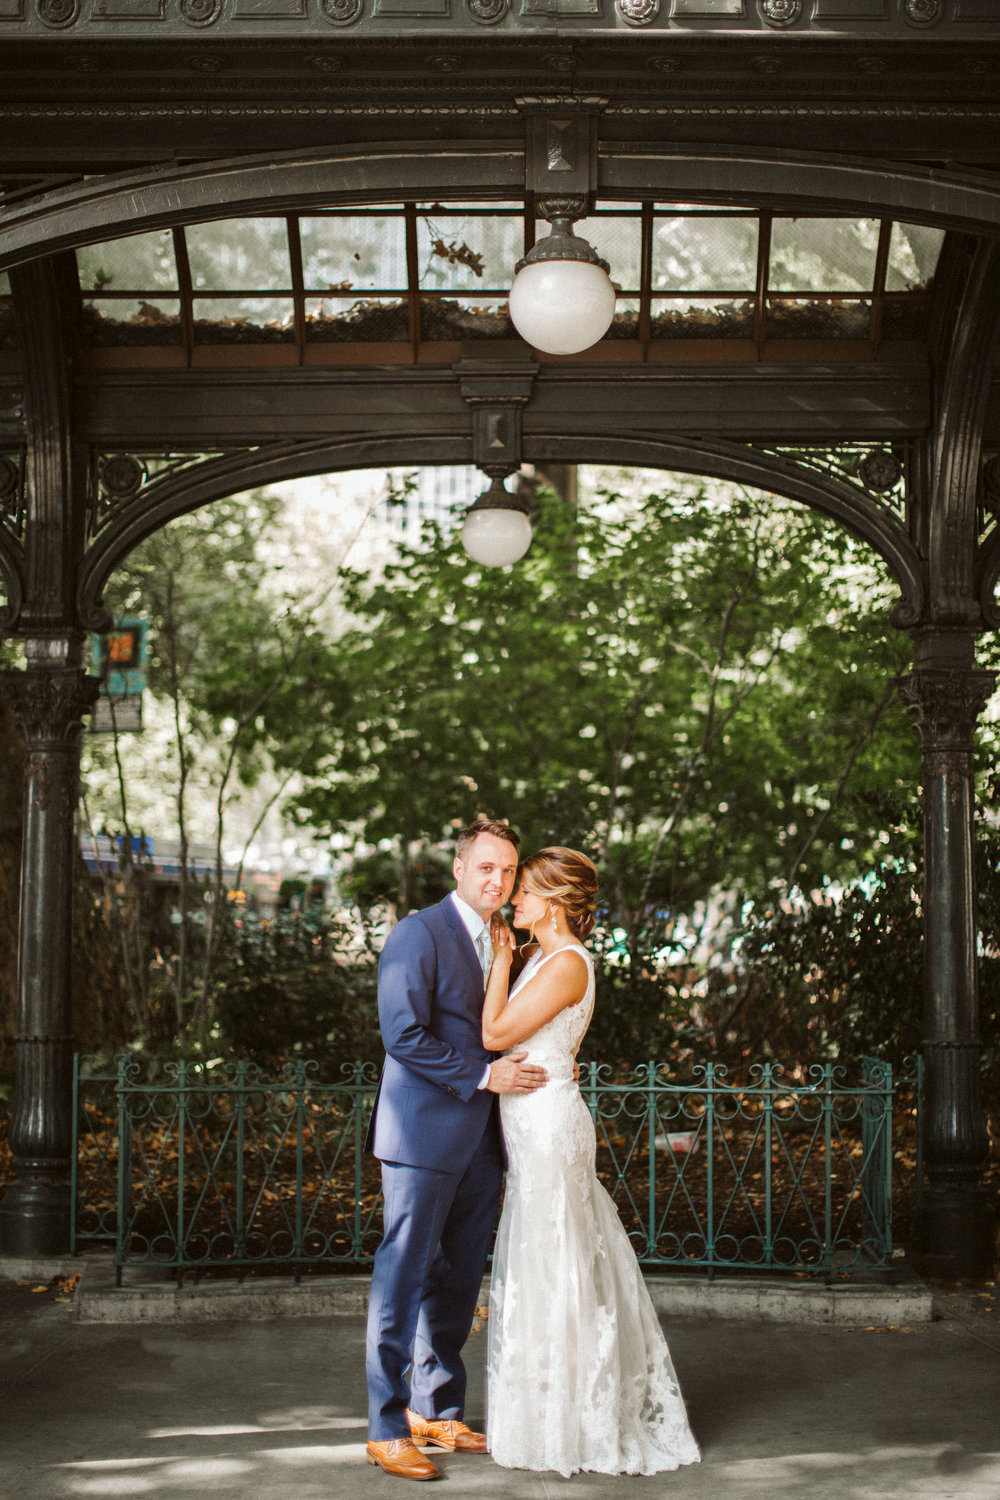 Seattle Wedding Pioneer Square BHLDN Bride Groom Nordstrom Penguin Photos by Reese Ferguson